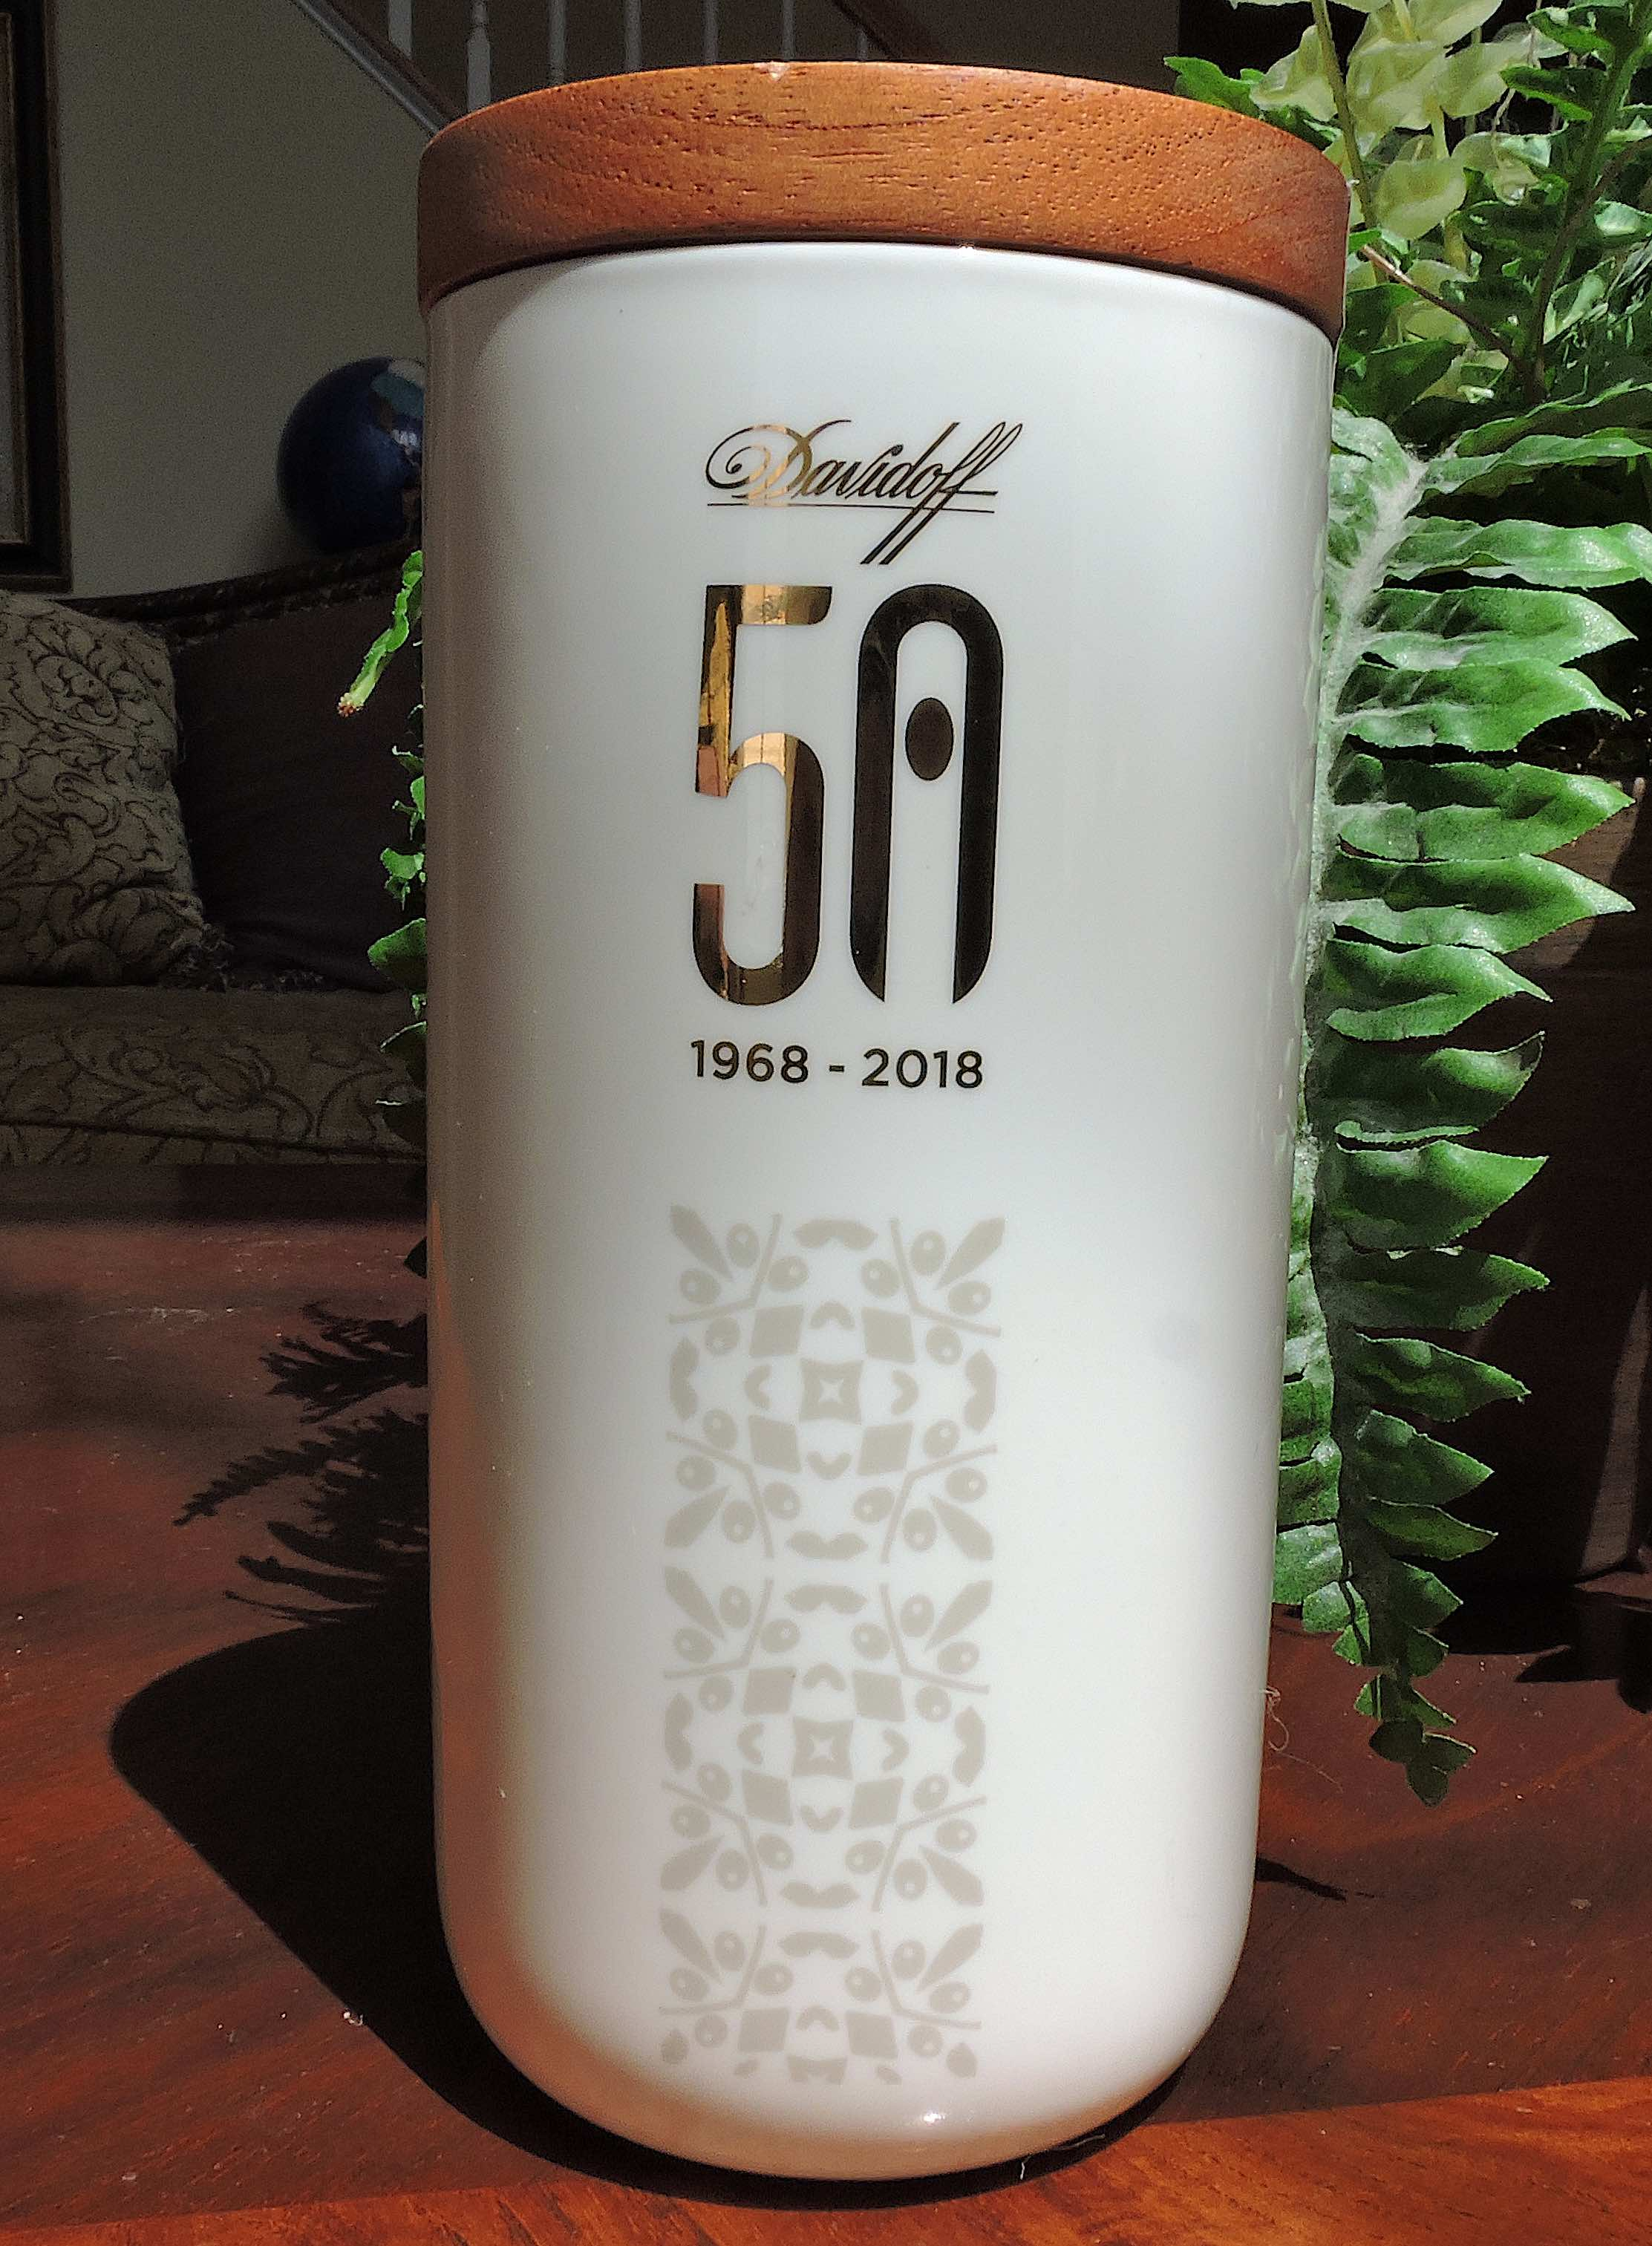 Davidoff 50 Years Limited Edition Diademas Finas L'Europe Jar